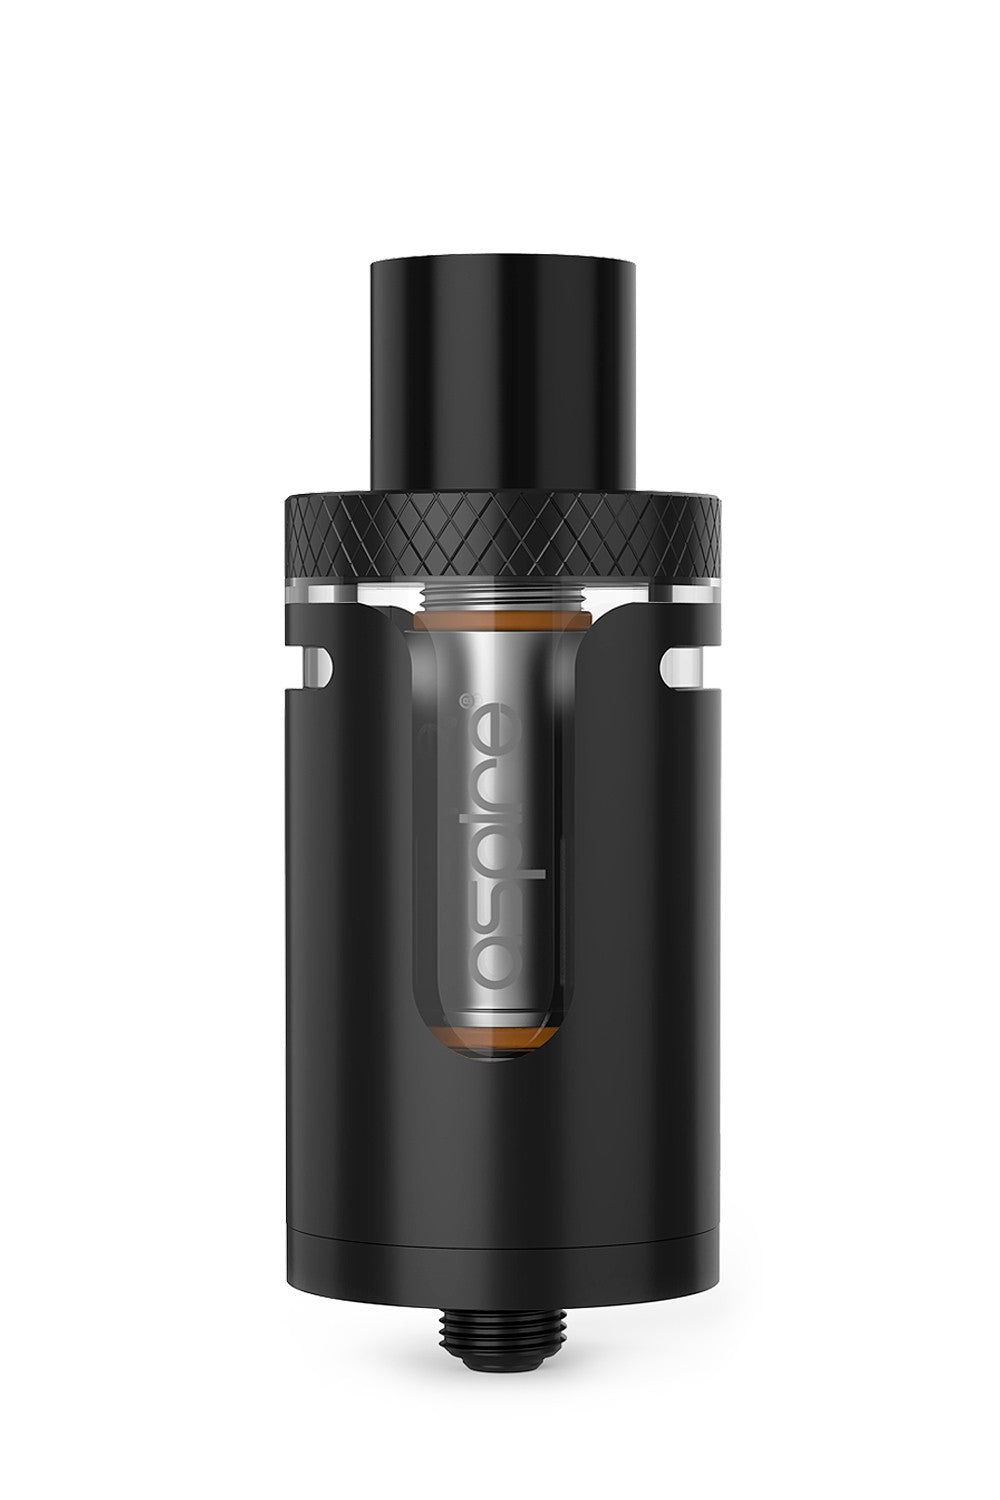 Aspire - Tank Cleito EXO Black for sale